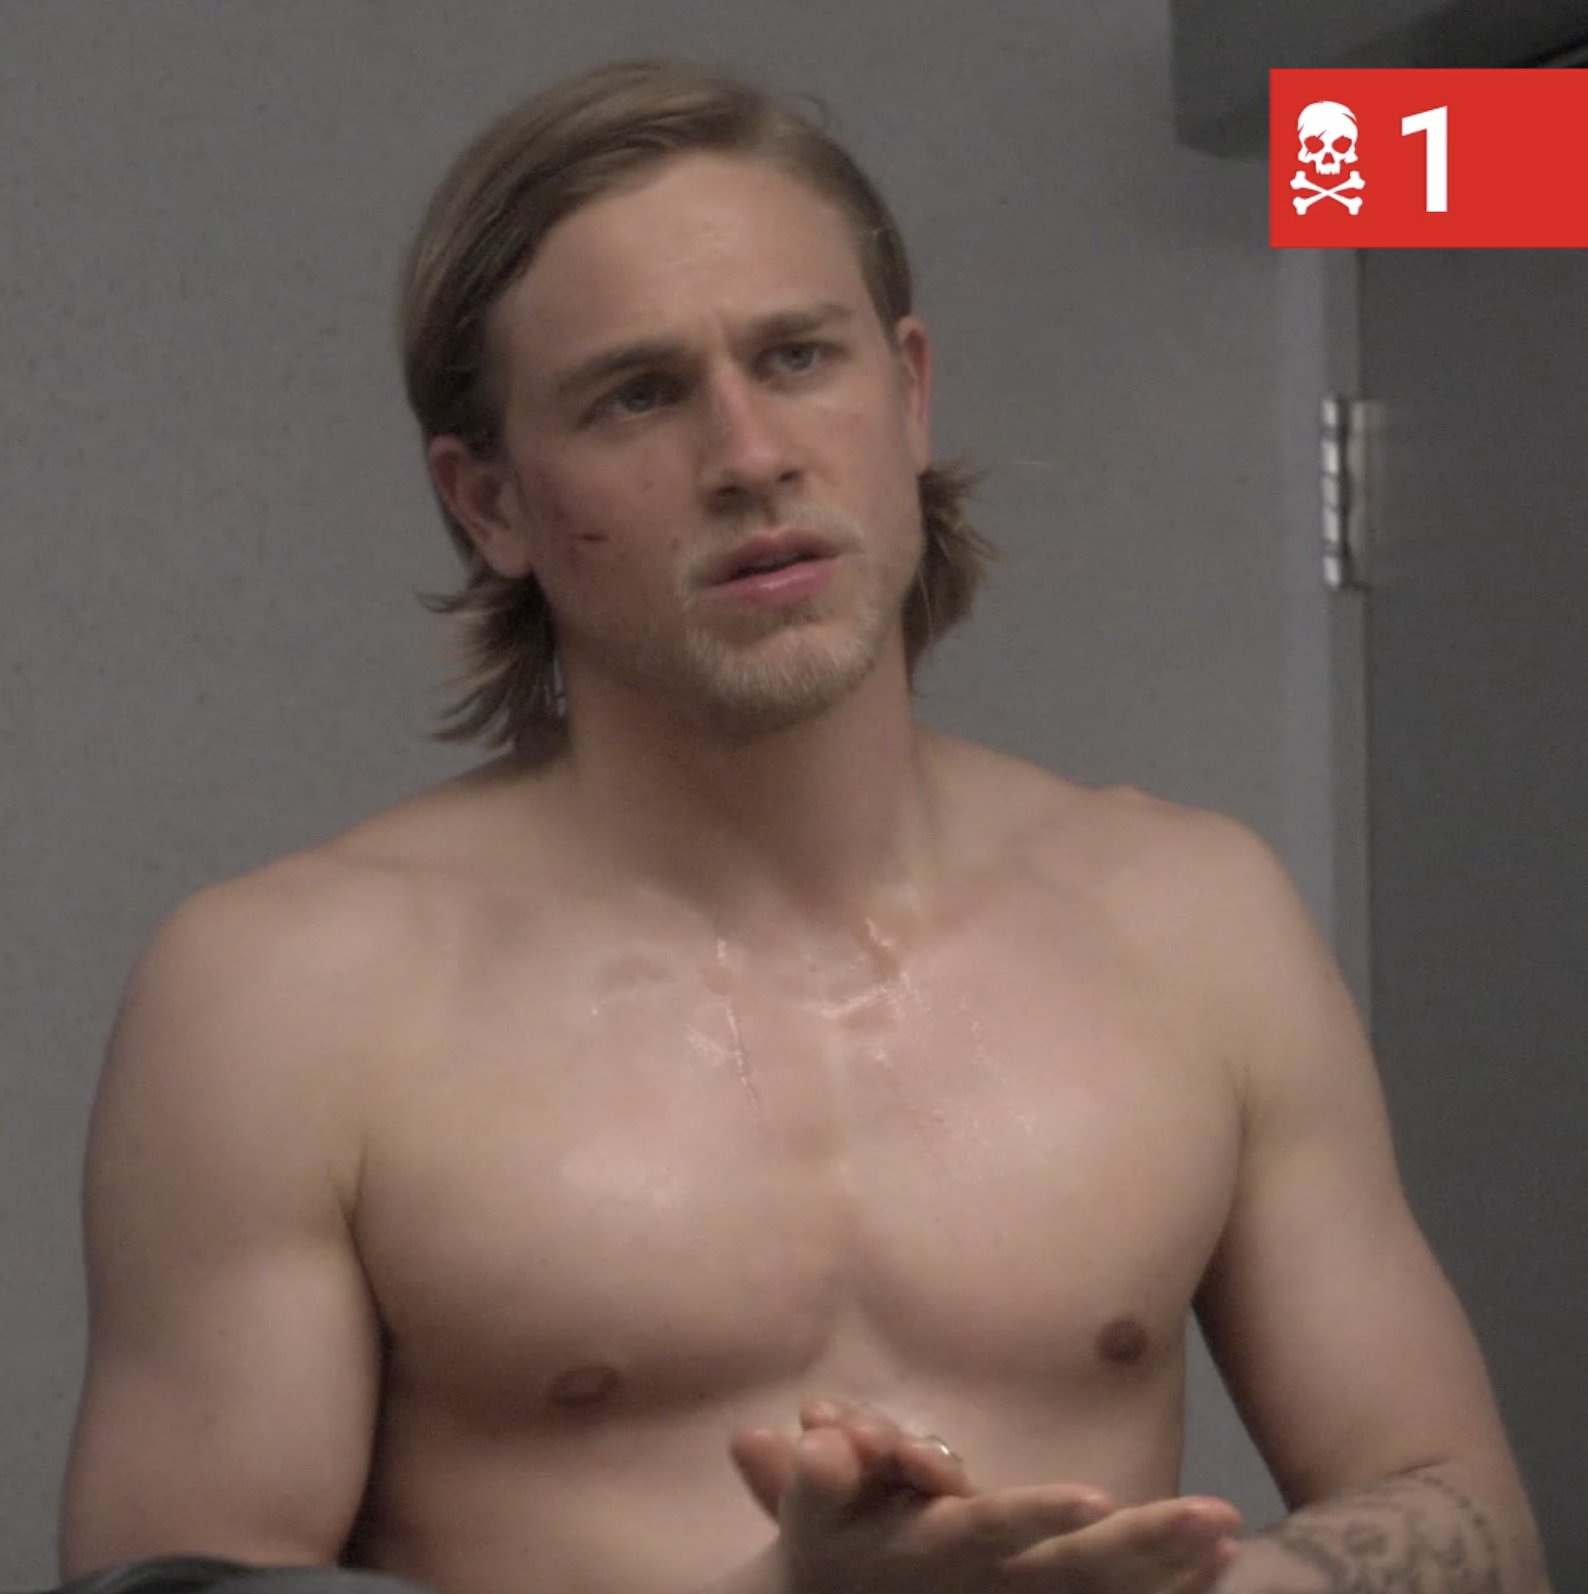 Here's every time Jax was shirtless on Sons of Anarchy. You're welcome. https://t.co/Yneec5q2Nq